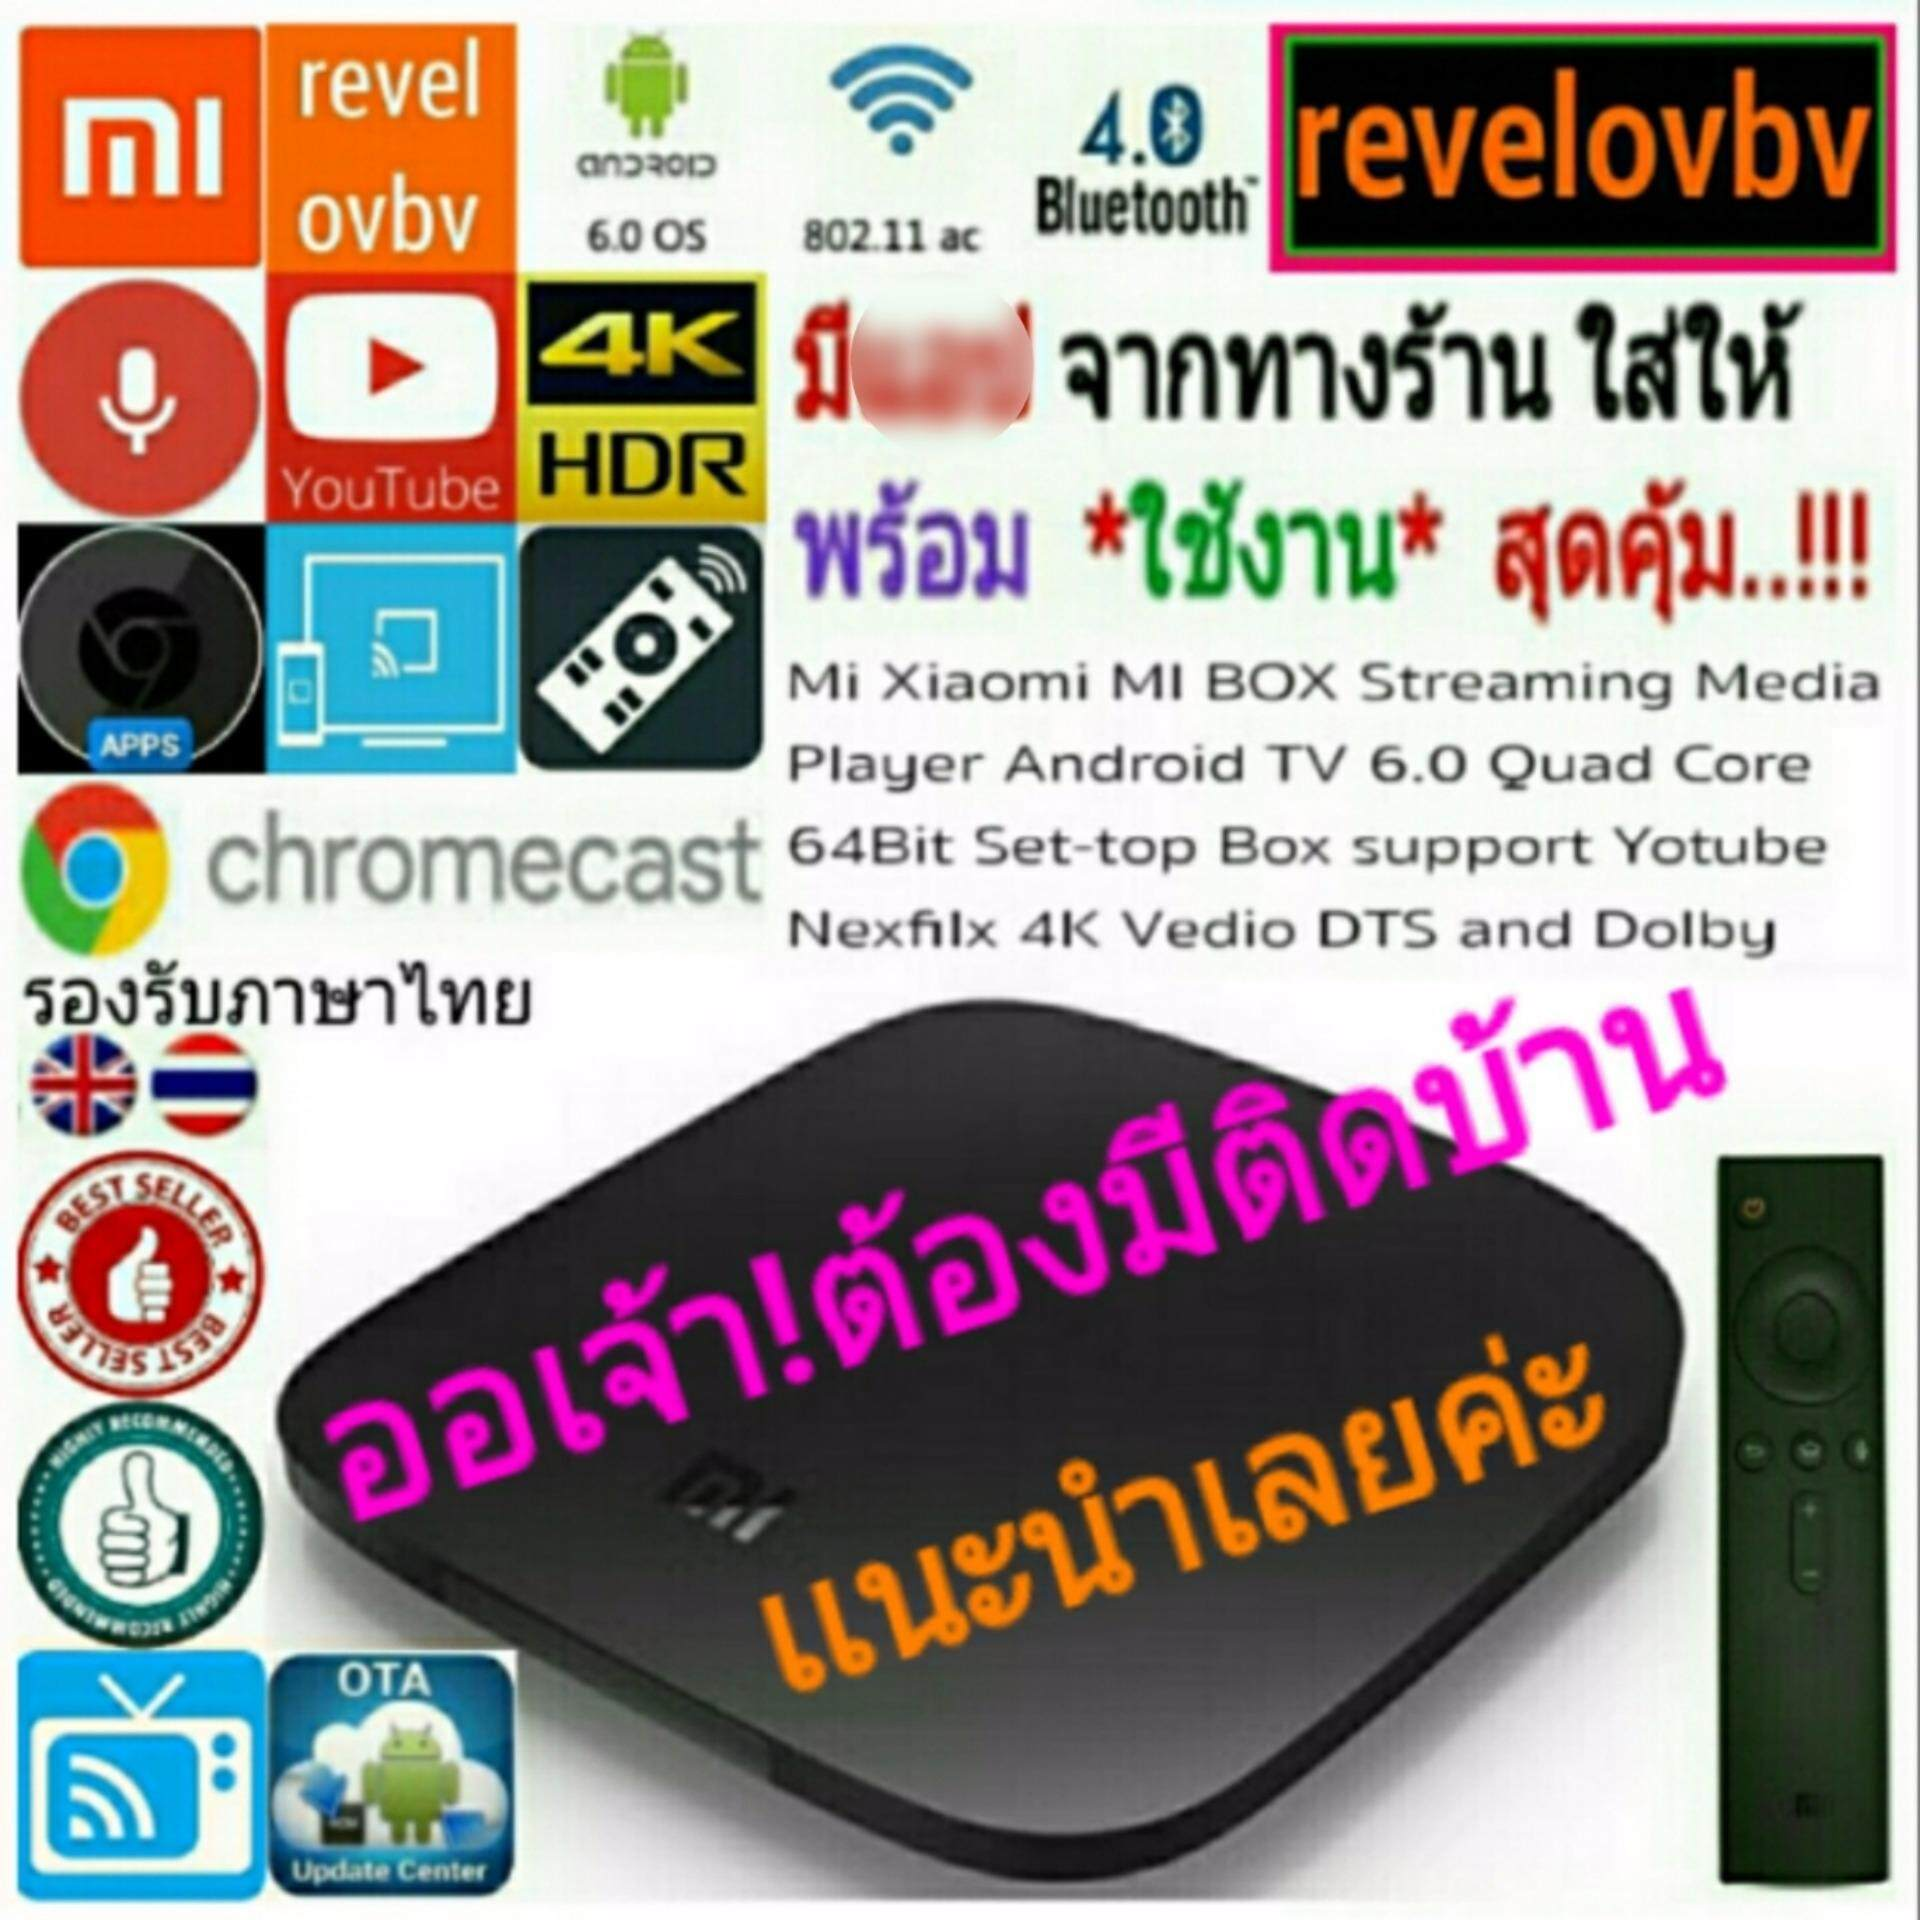 ราคา Mi Box 2016 Xiaomi Mi Box Streaming Media Player Android Tv 6 Quad Core 64Bit Set Top Box Support Yotube Nexfilx 4K Vedio Dts And Dolby ใหม่ ถูก